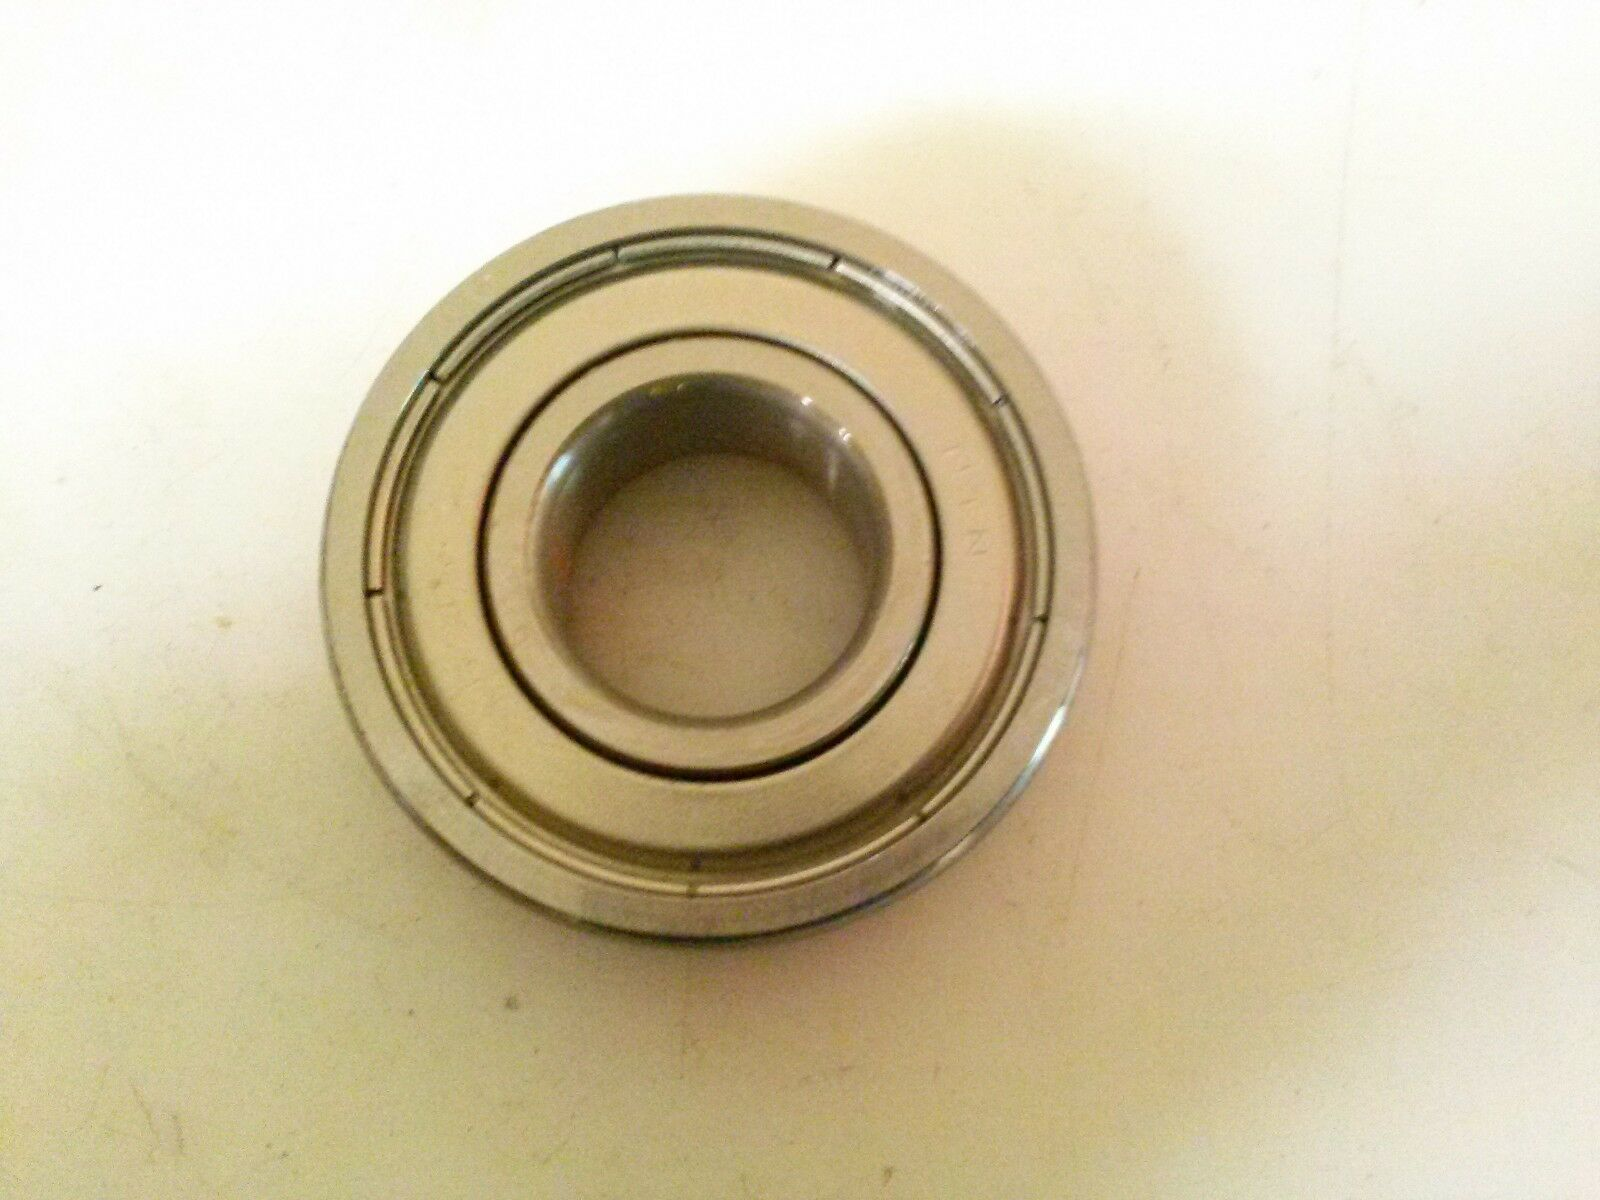 NTN 6203ZZ // 2A bearing standard internal clearance factory sealed 10 pack .